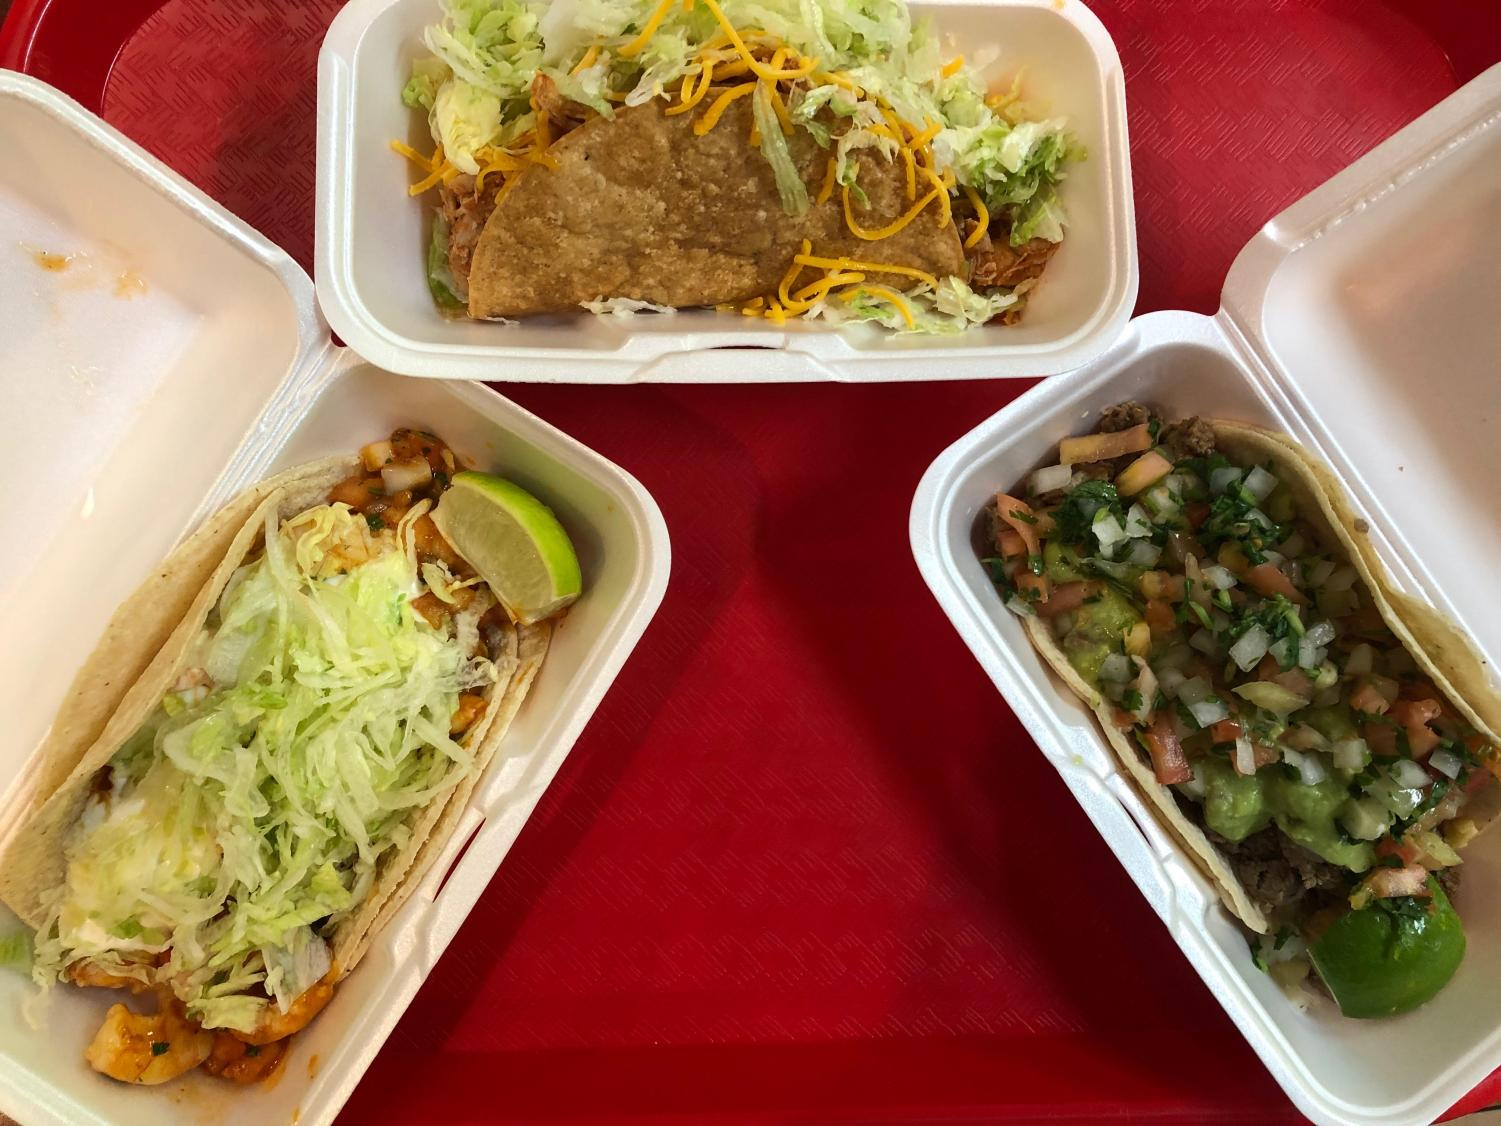 Taco 'bout a good meal! Alberto's Mexican Food is located on 4845 Granite Dr, Rocklin, CA 95677.